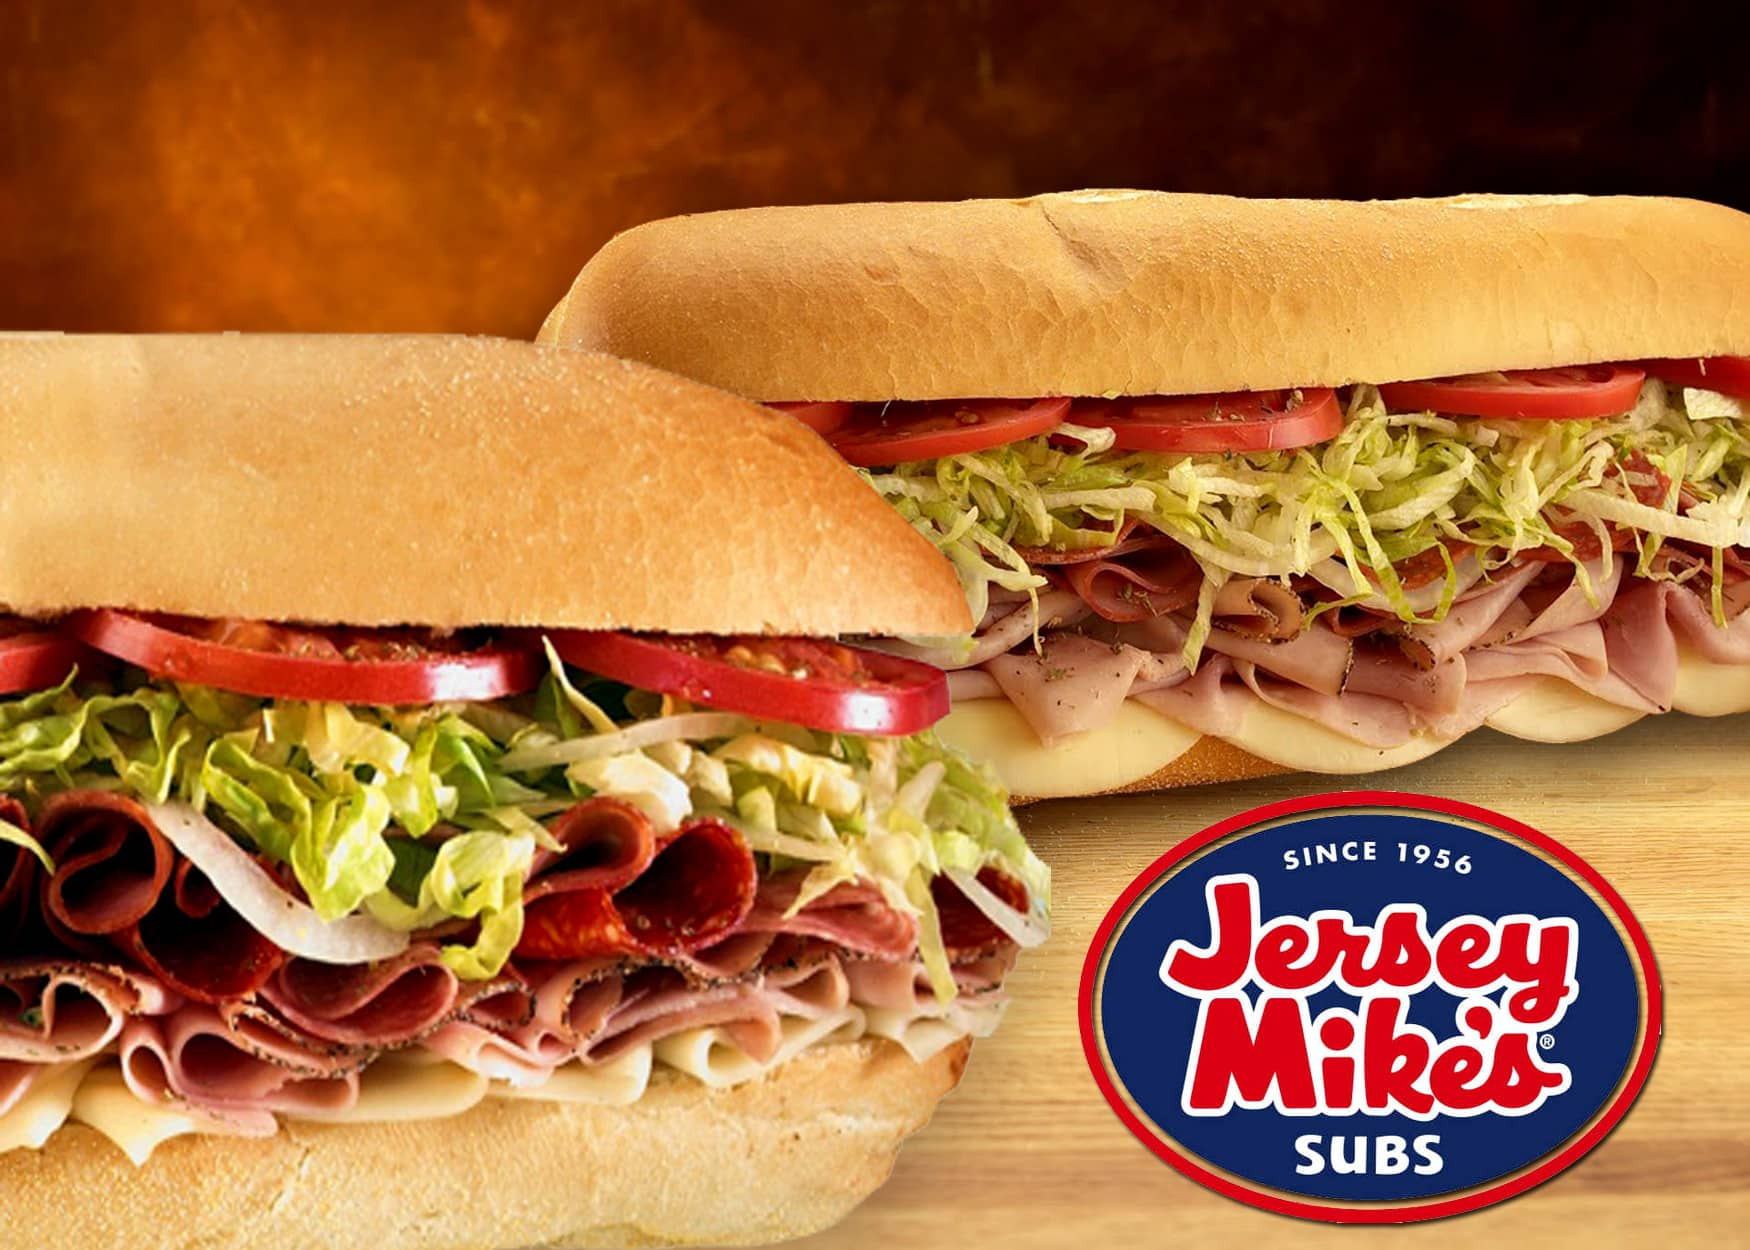 Buy 1 Get 1 Free Regular Sub @ Jersey Mike's (Valid 5/6-5/8)